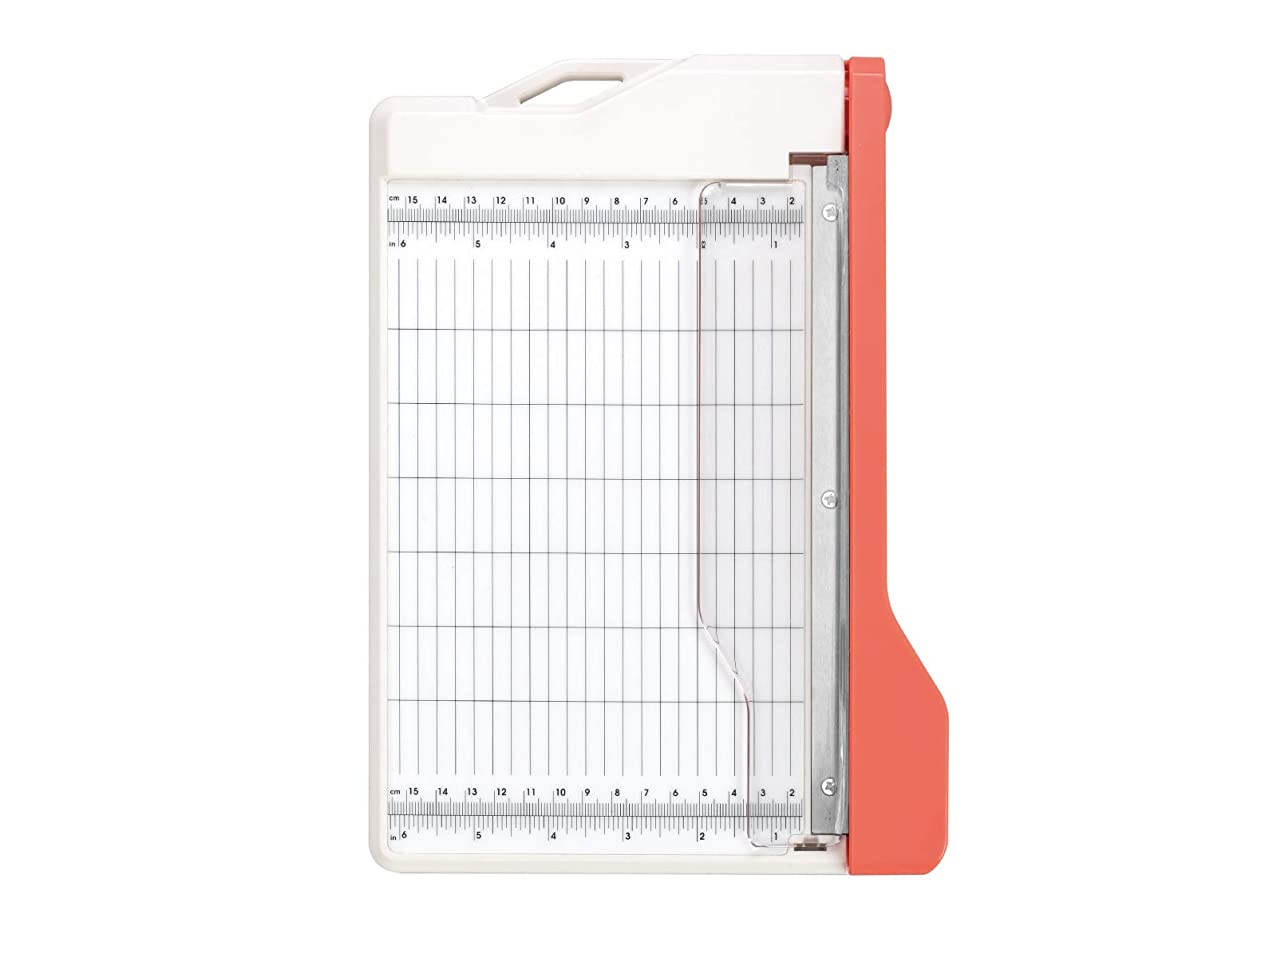 Bira Craft Guillotine Paper Trimmer, Guillotine Paper Cutter, 8.5 inch Cut Length, for Coupon, Craft Paper and Photo